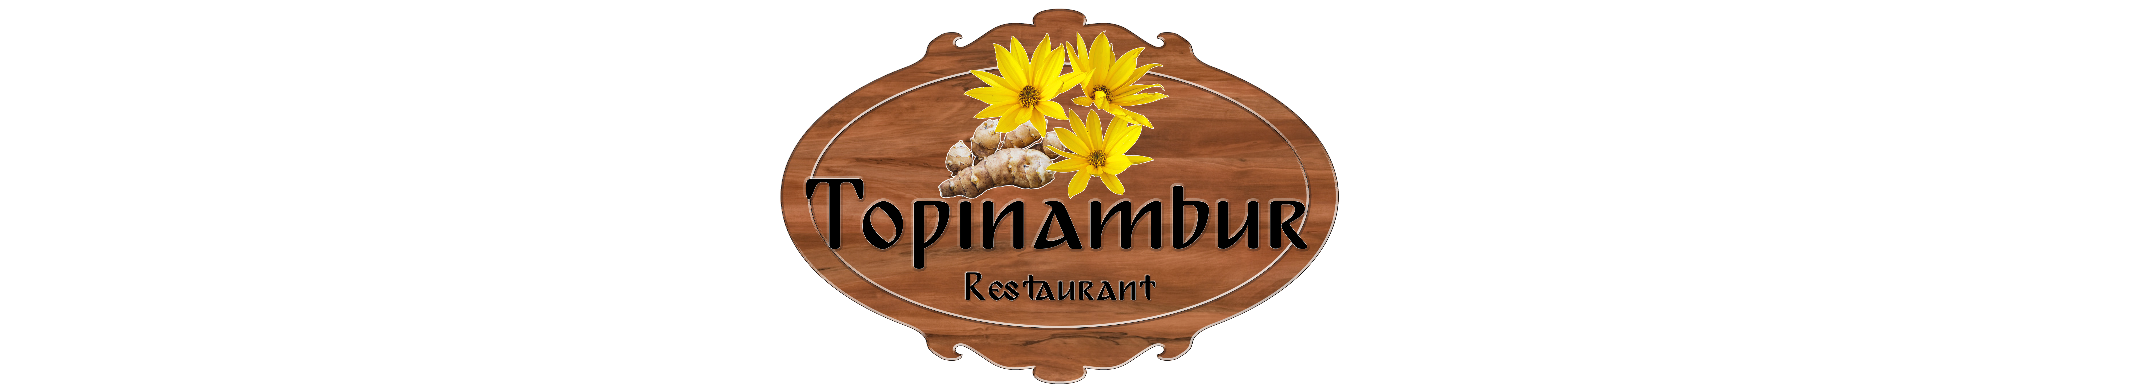 Restaurant Topinambur